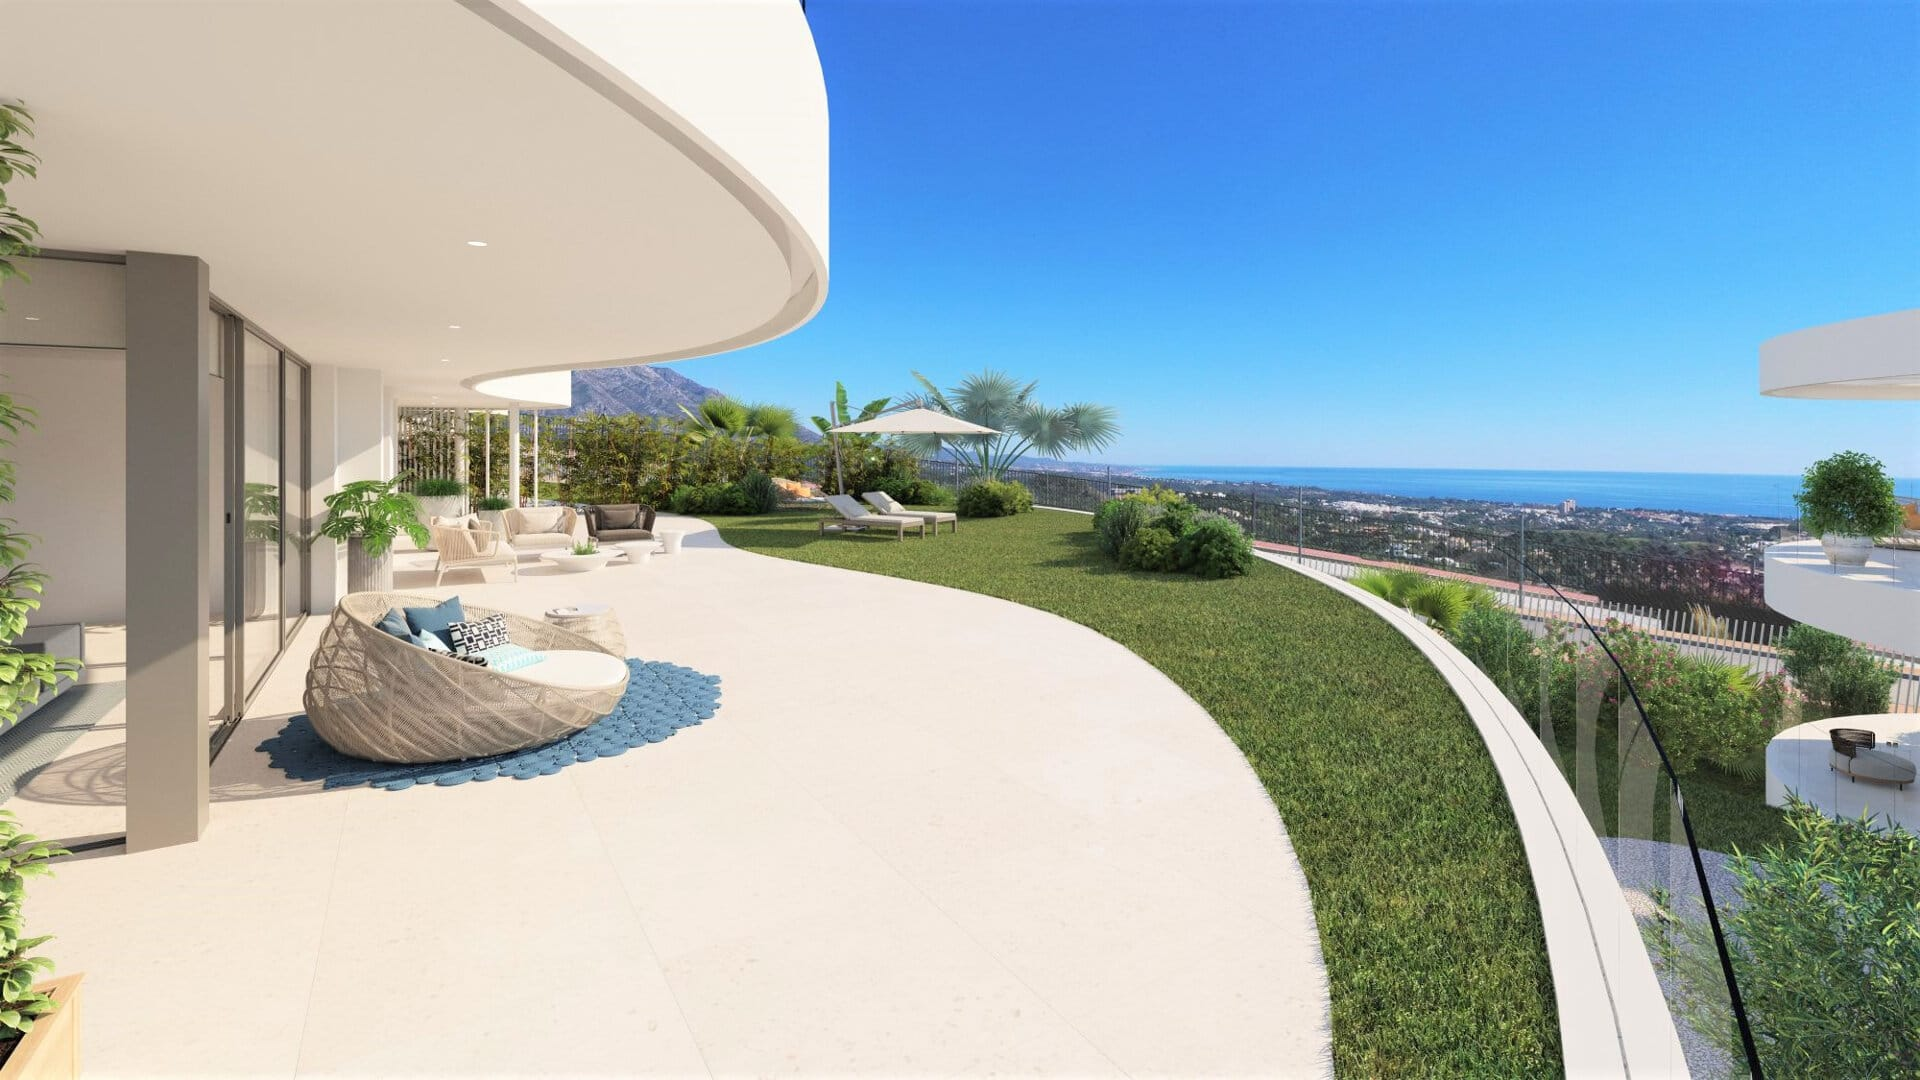 The view Marbella apartment